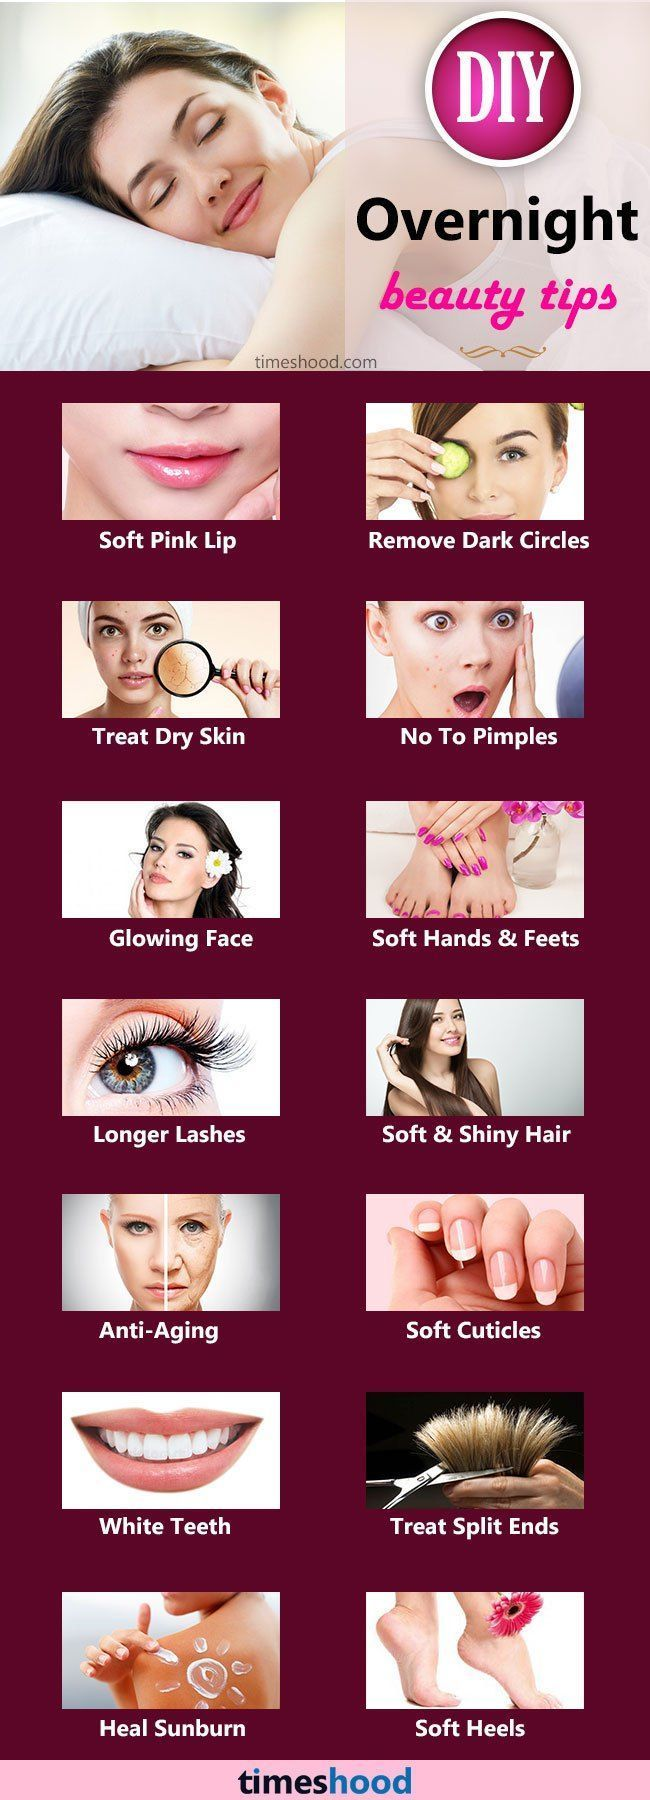 Overnight beauty tips: Beauty tips for skin, hair, Anti Aging Tips, beauty tips for women, home remedies for skin care, Tips to reduce dark circle and dark stop overnight. #skincaretips